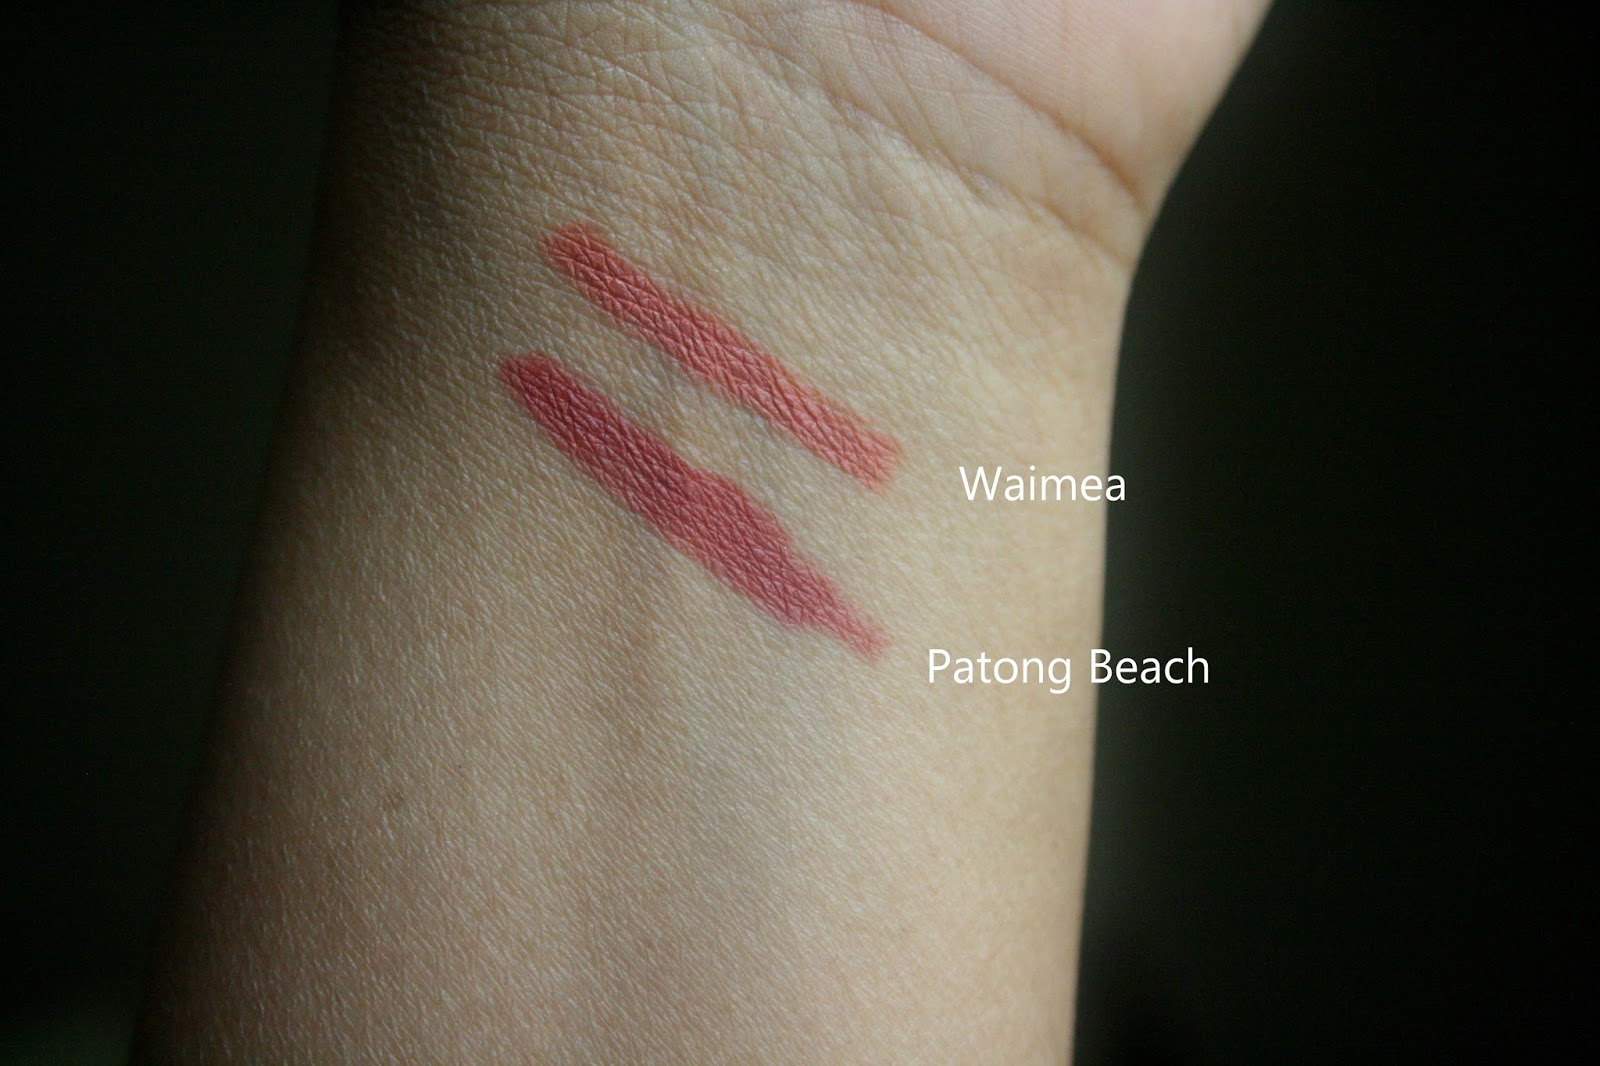 NARS Velvet Lip Liners Waimea and Patong Beach Swatches